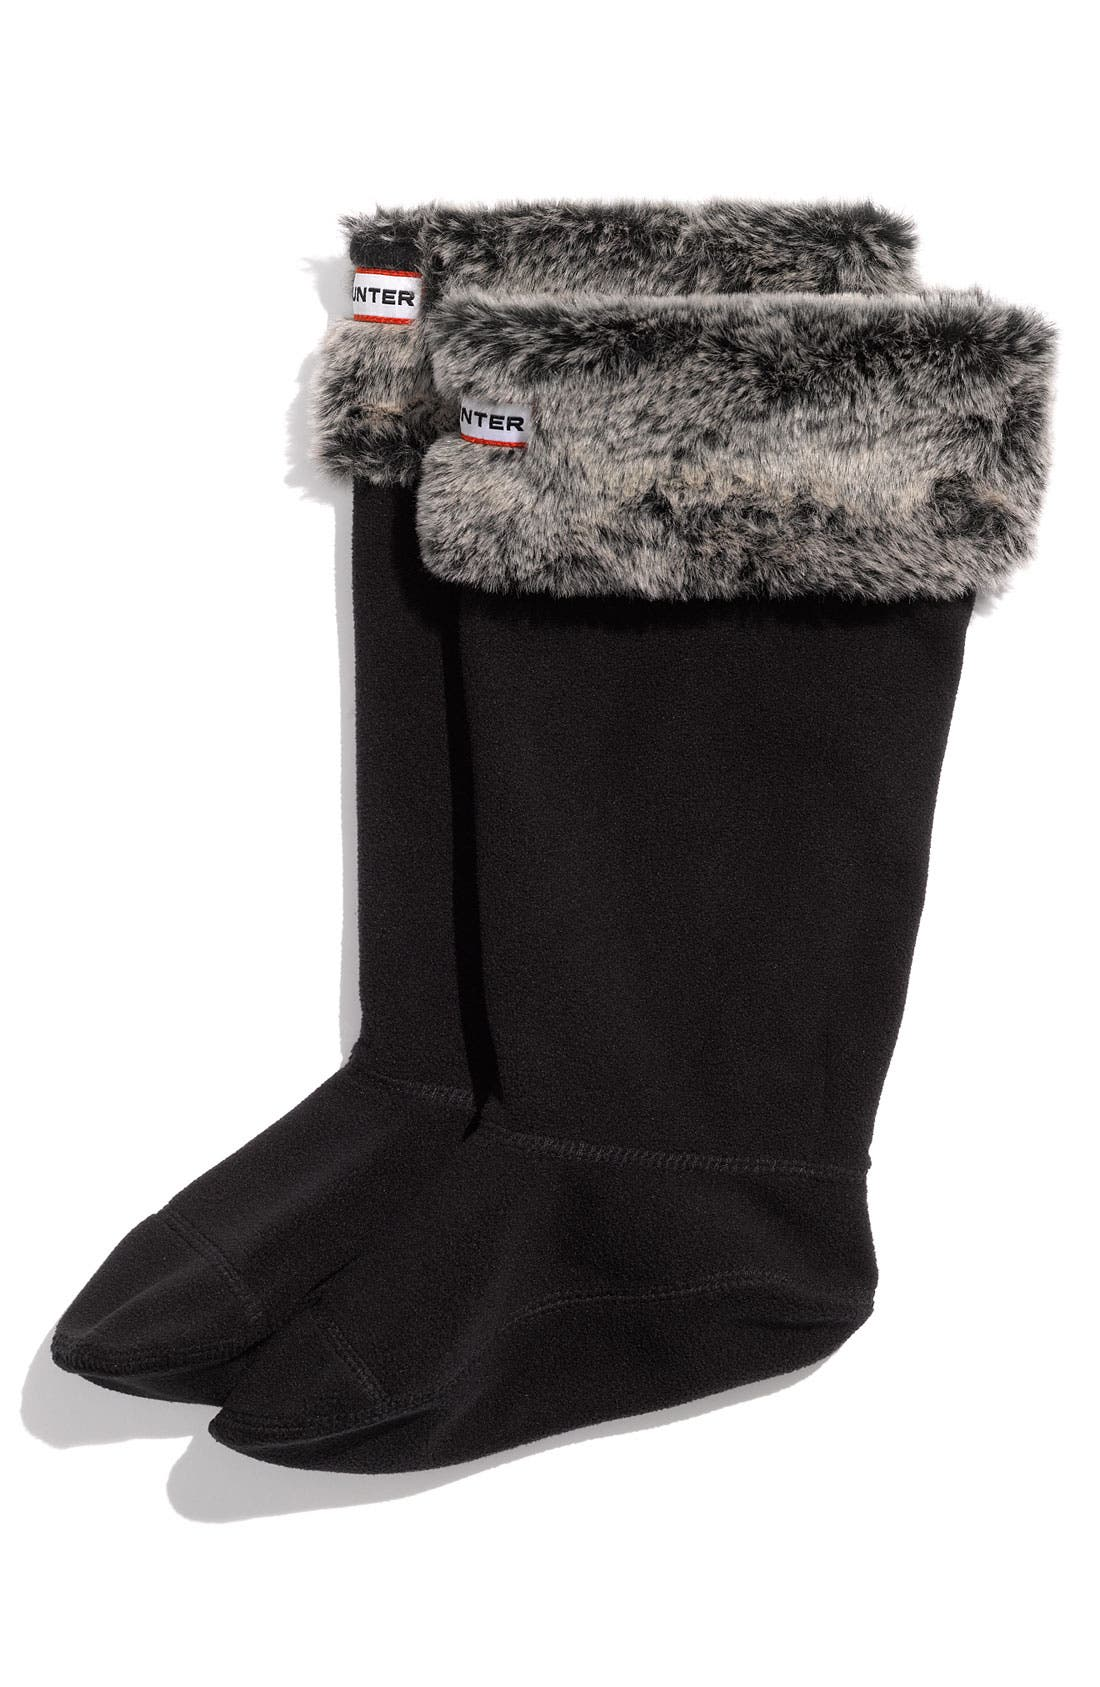 Alternate Image 1 Selected - Hunter 'Grizzly' Welly Socks